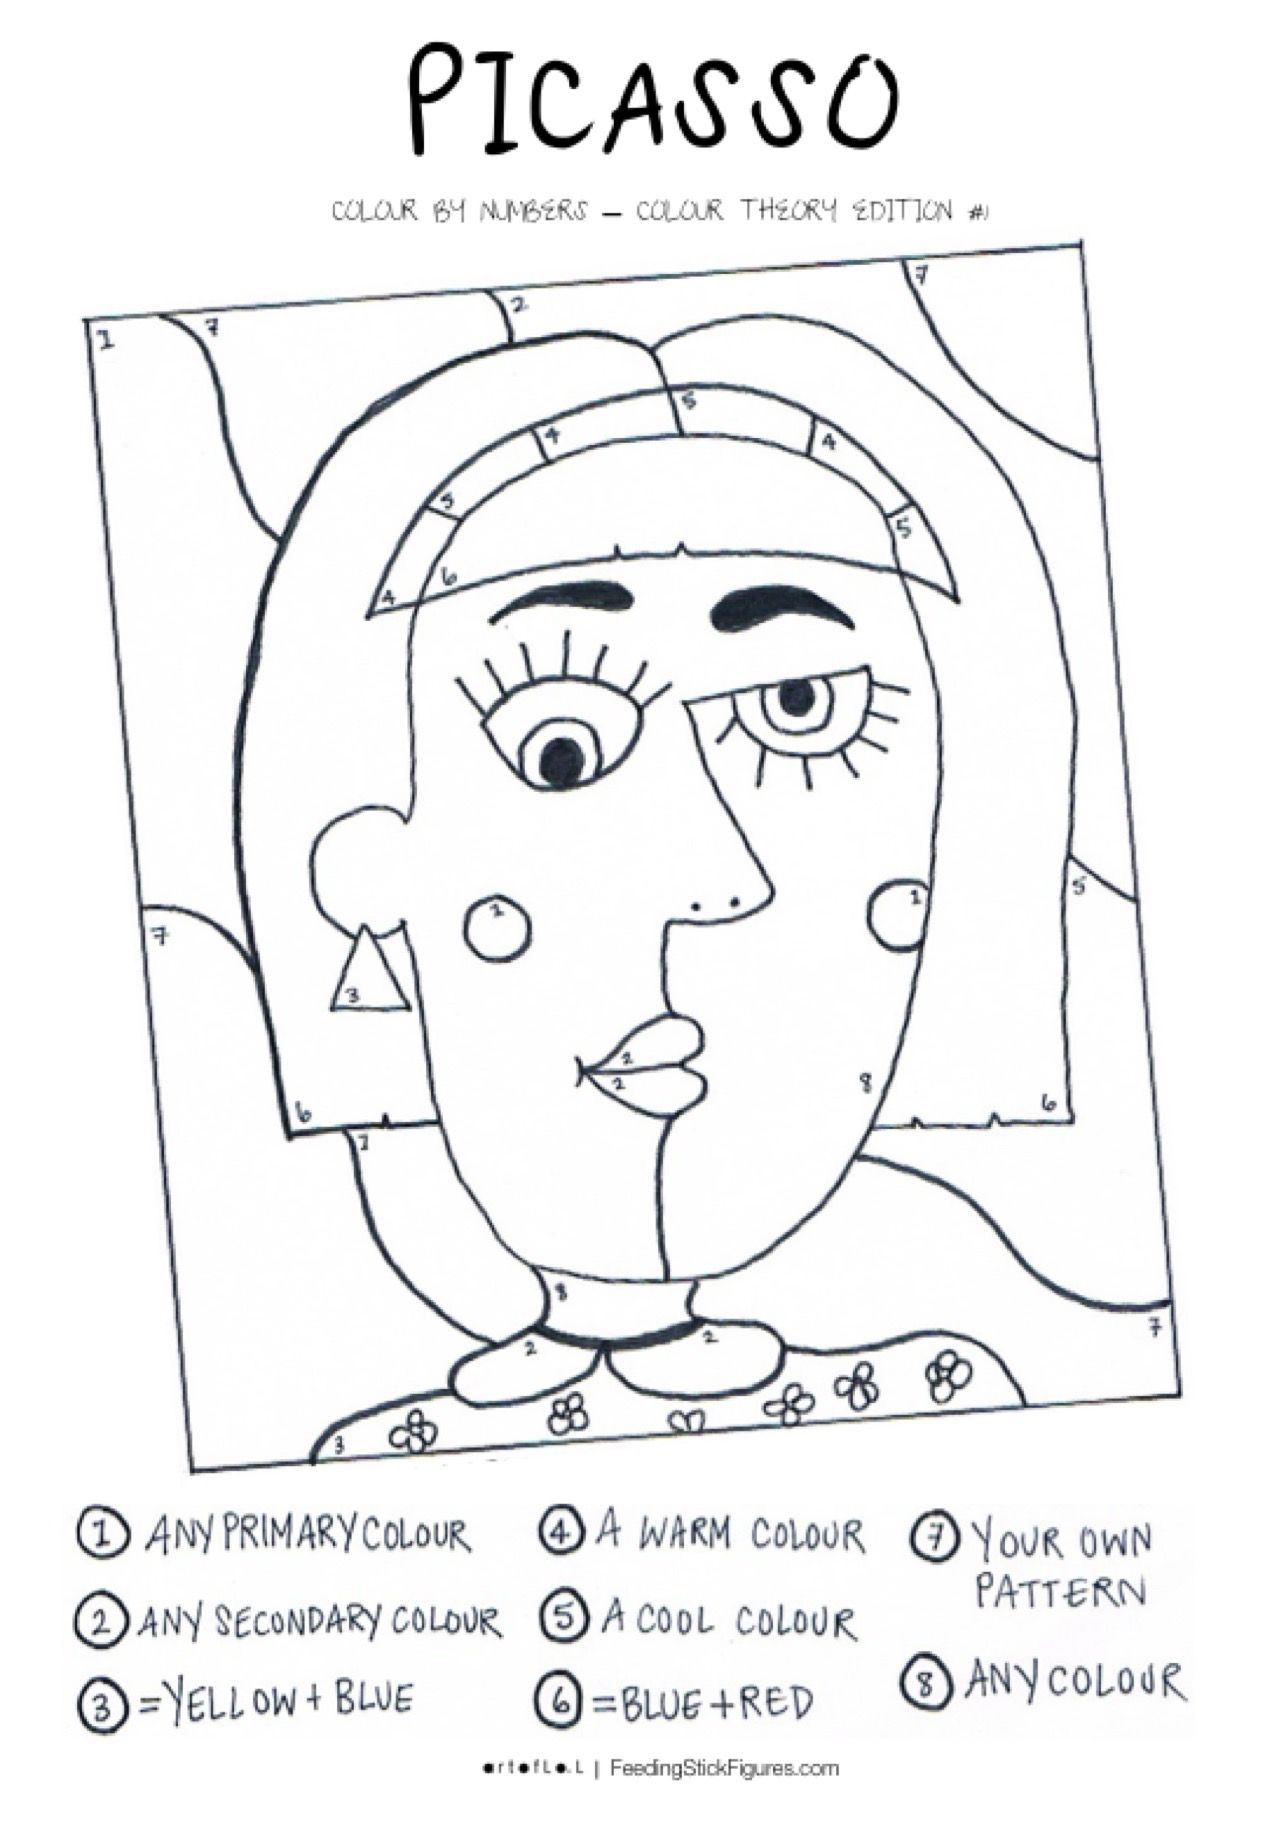 Picasso Colour By Numbers Activity Sheet Feedingstickfigures Picasso Art Art Lessons For Kids Art Handouts